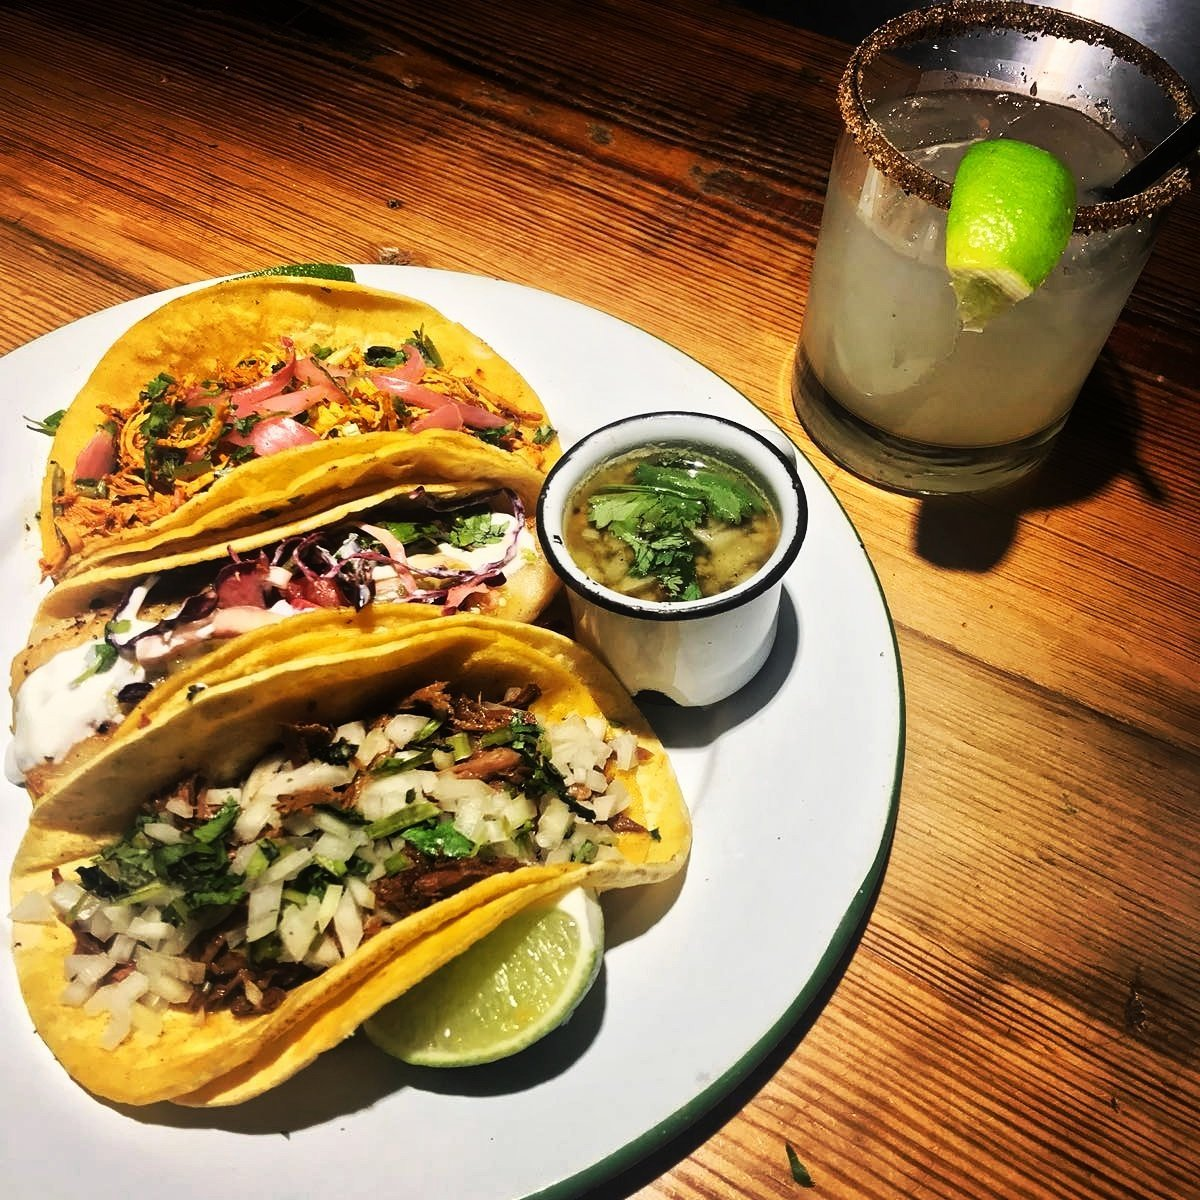 Are you ready for this?. 😍🌮😏#tacos #foodblogger #food #foodlover #mexicanfood #Mexico https://t.co/xetAU9337S